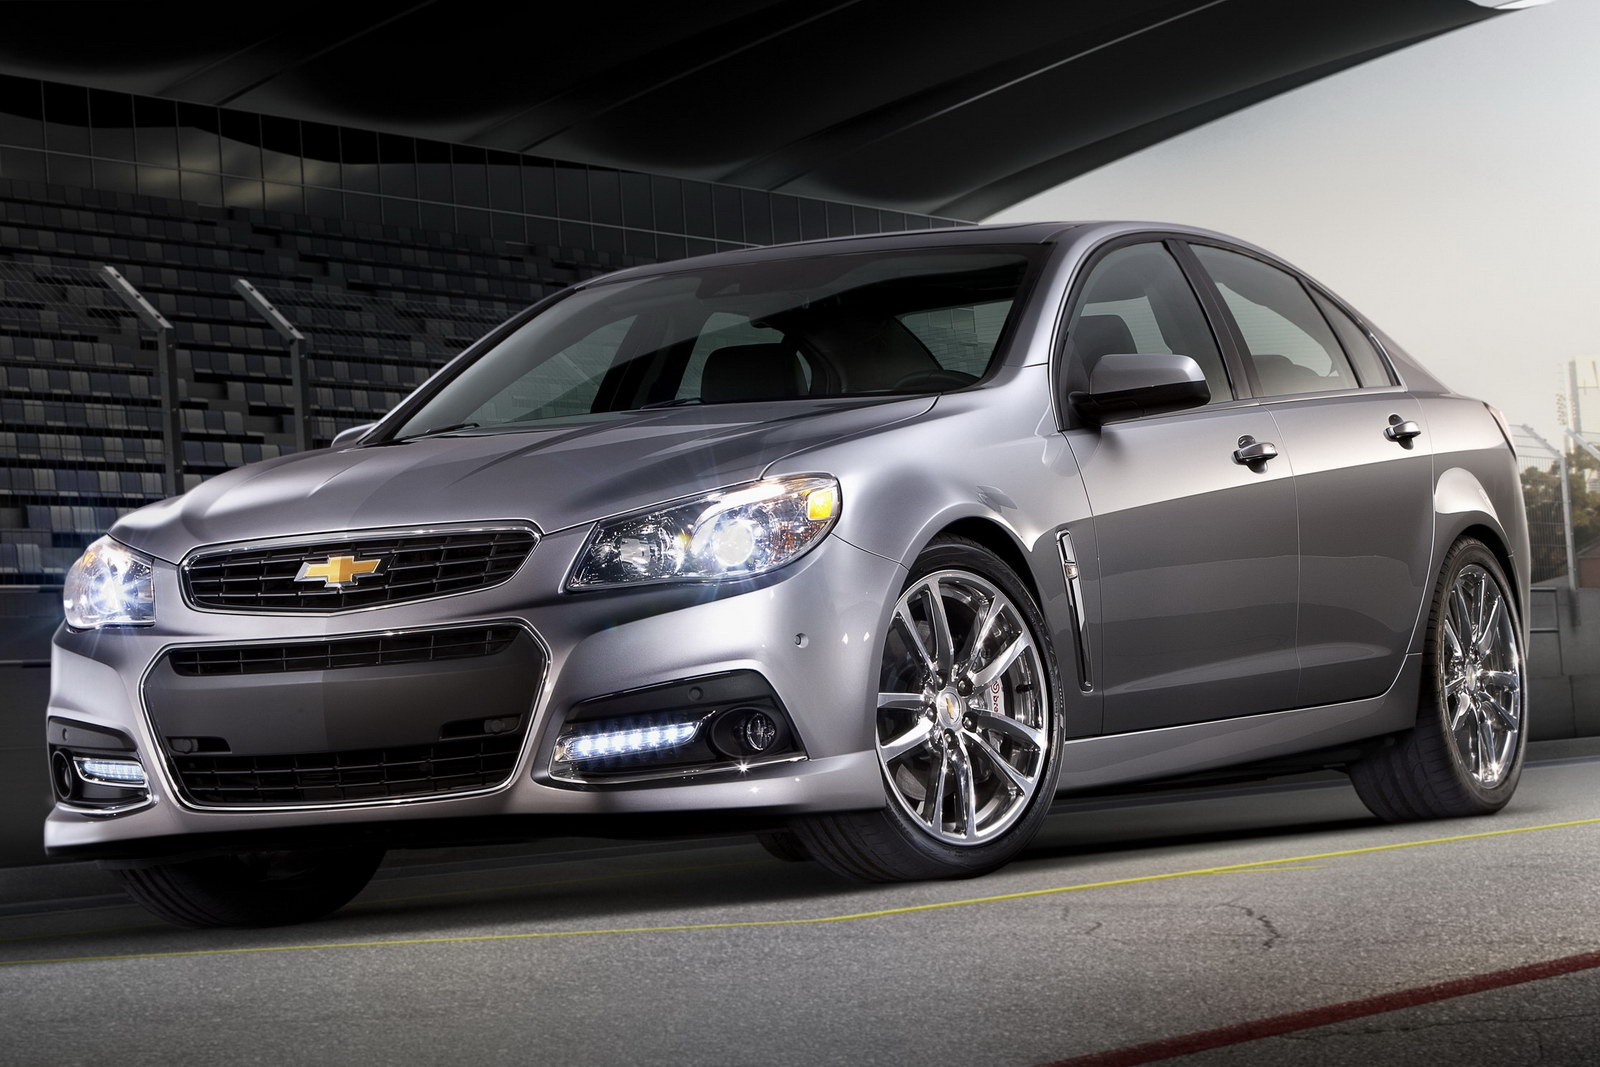 2014 Chevrolet Ss Amcarguide Com American Muscle Car Guide